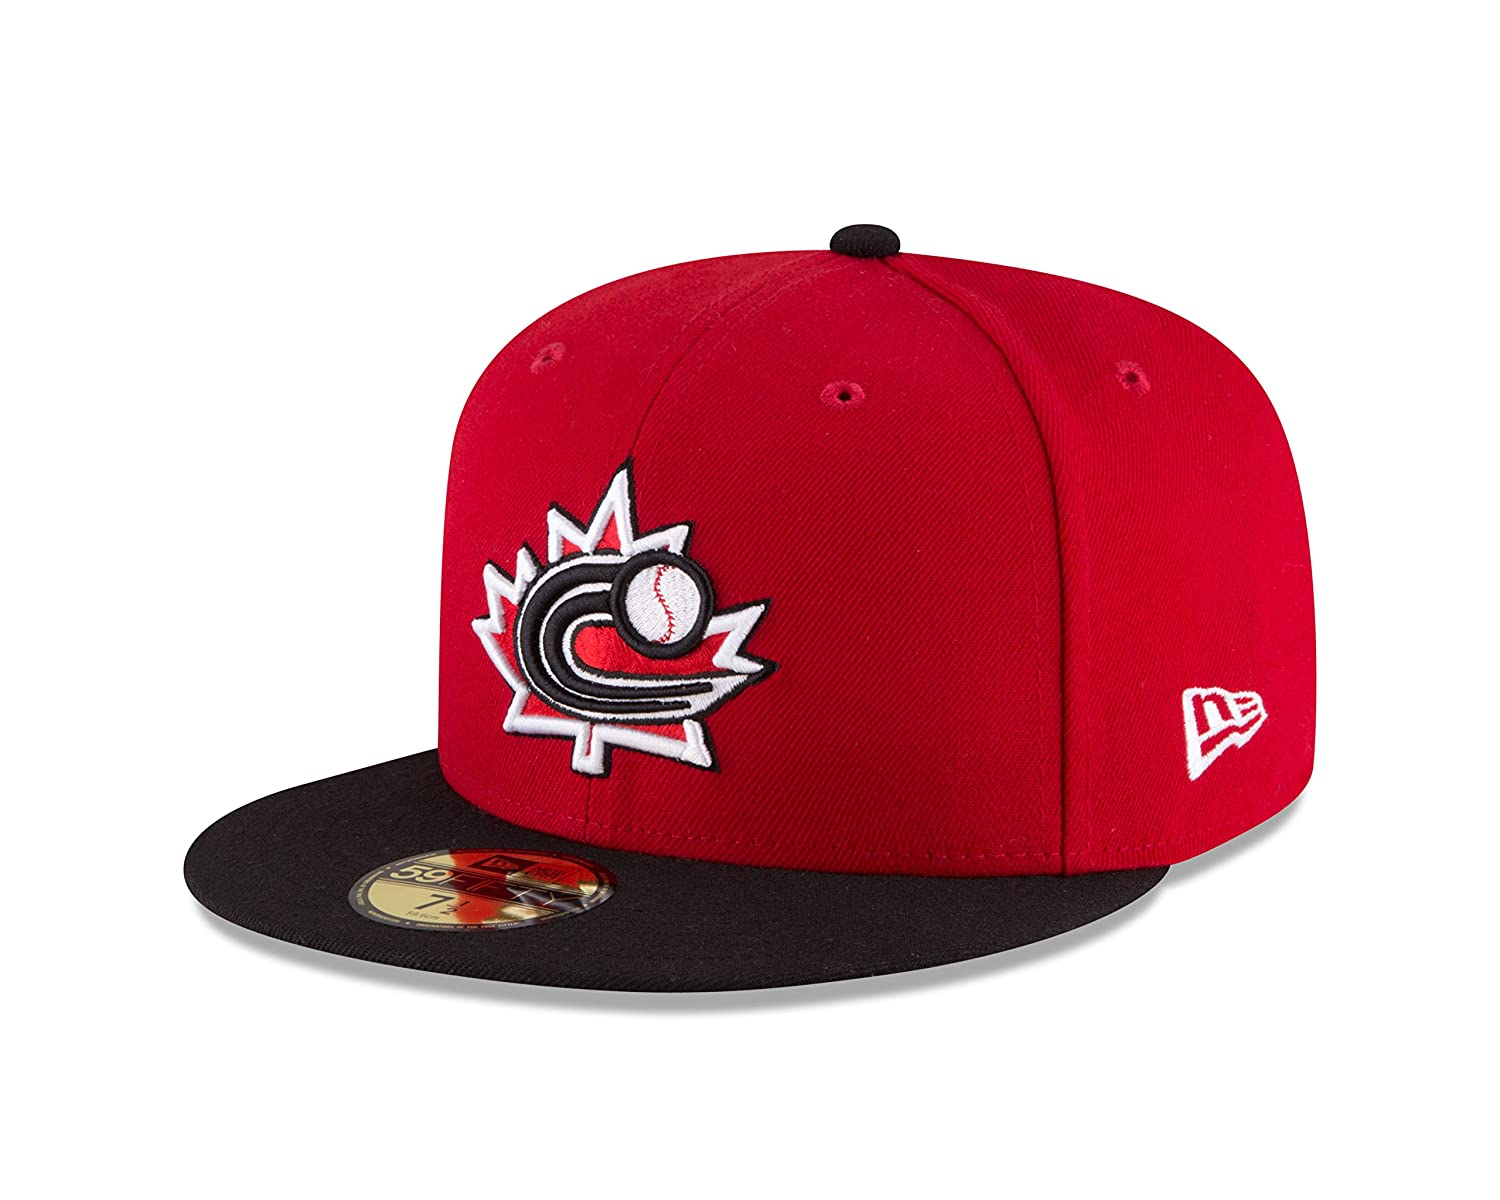 Amazon.com   New Era World Baseball Classic Men s 2017 Official On Field  59Fifty Fitted Cap   Sports   Outdoors 34266e9a8a8e